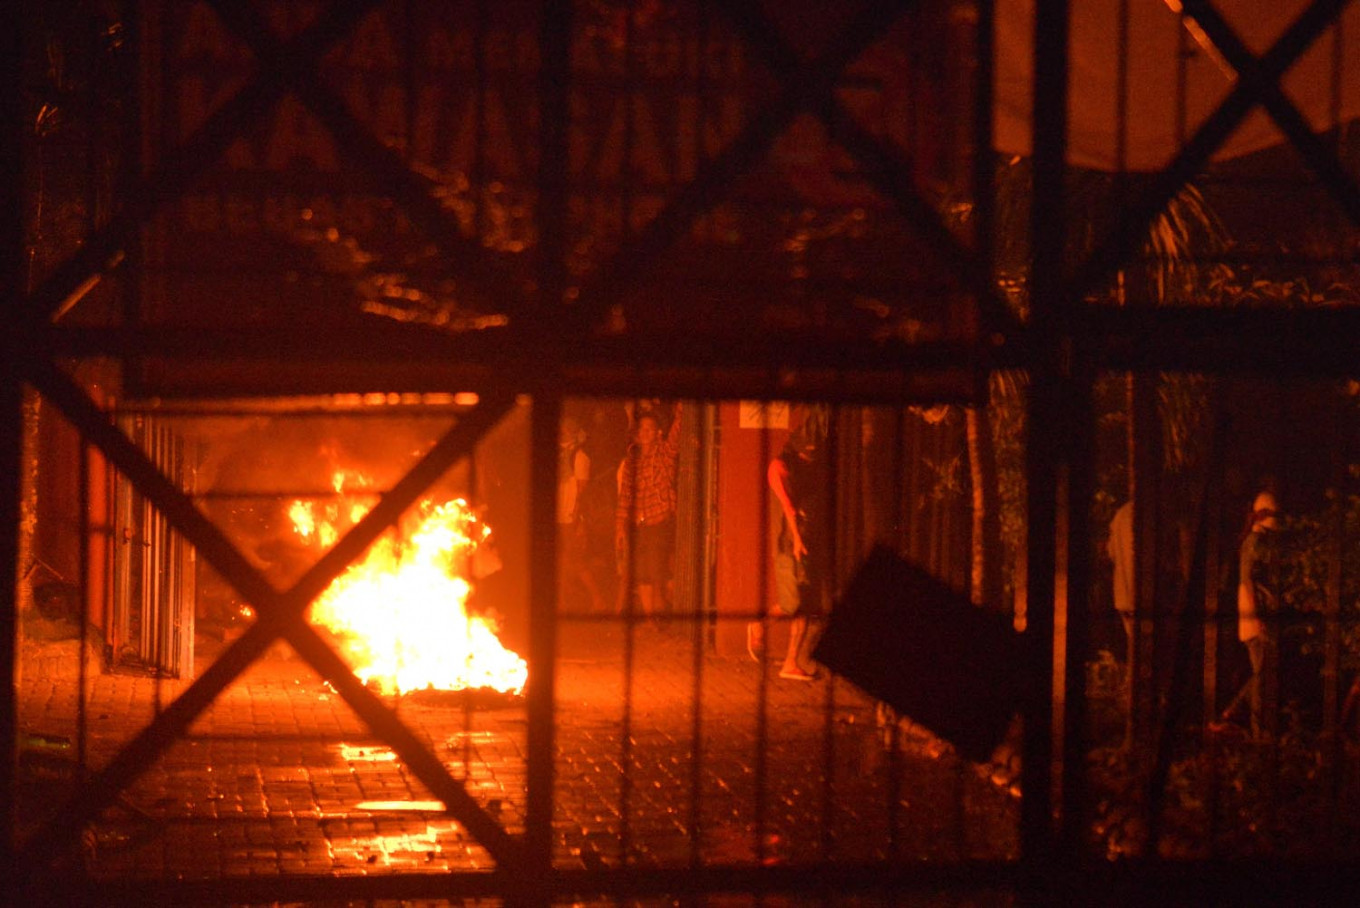 COVID-19: Riot breaks out in North Sulawesi prison amid virus fears